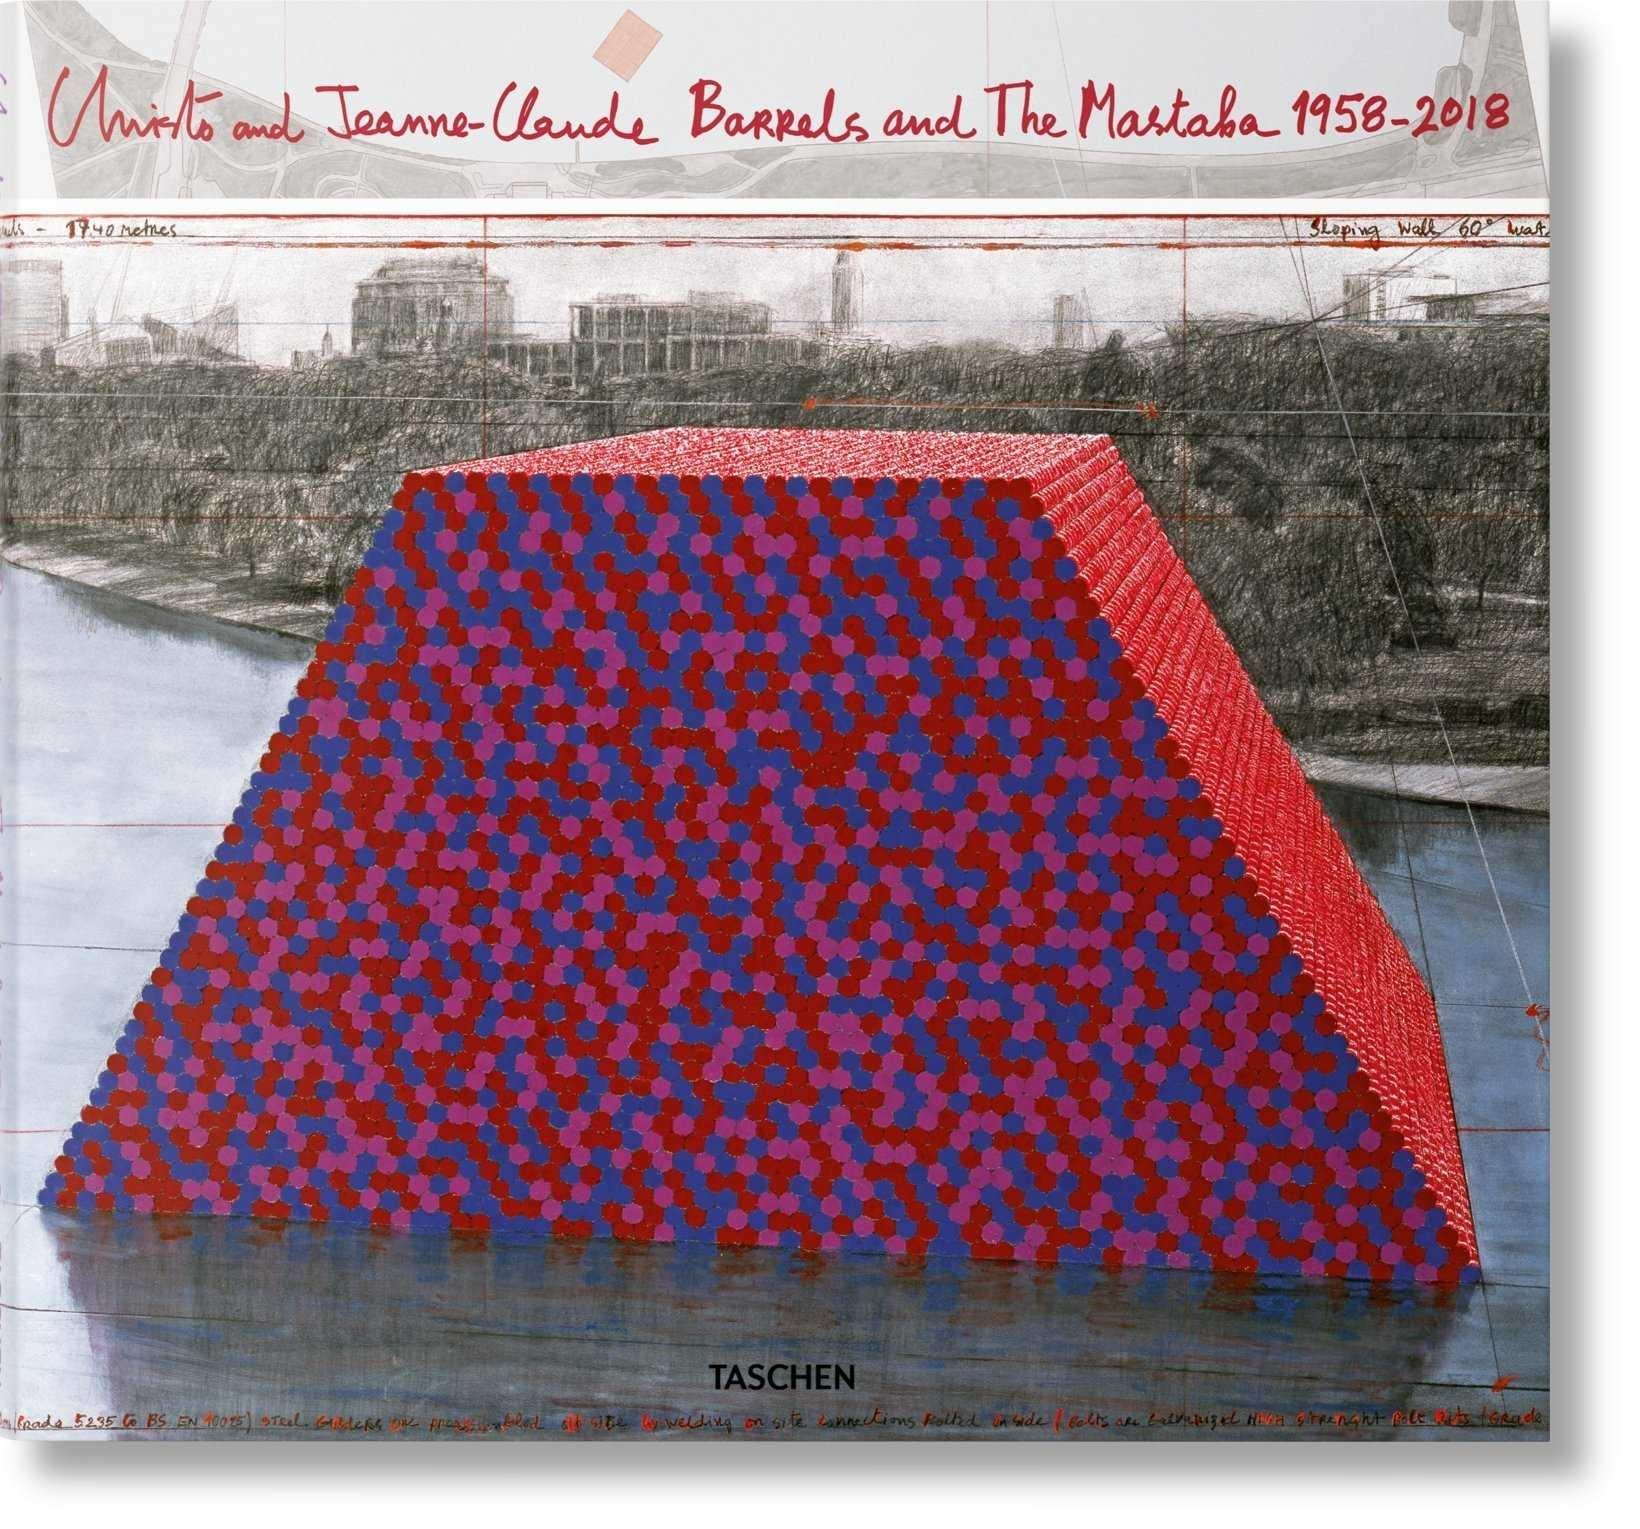 CHRISTO AND JEANNE-CLAUDE. BARRELS AND THE MASTABA